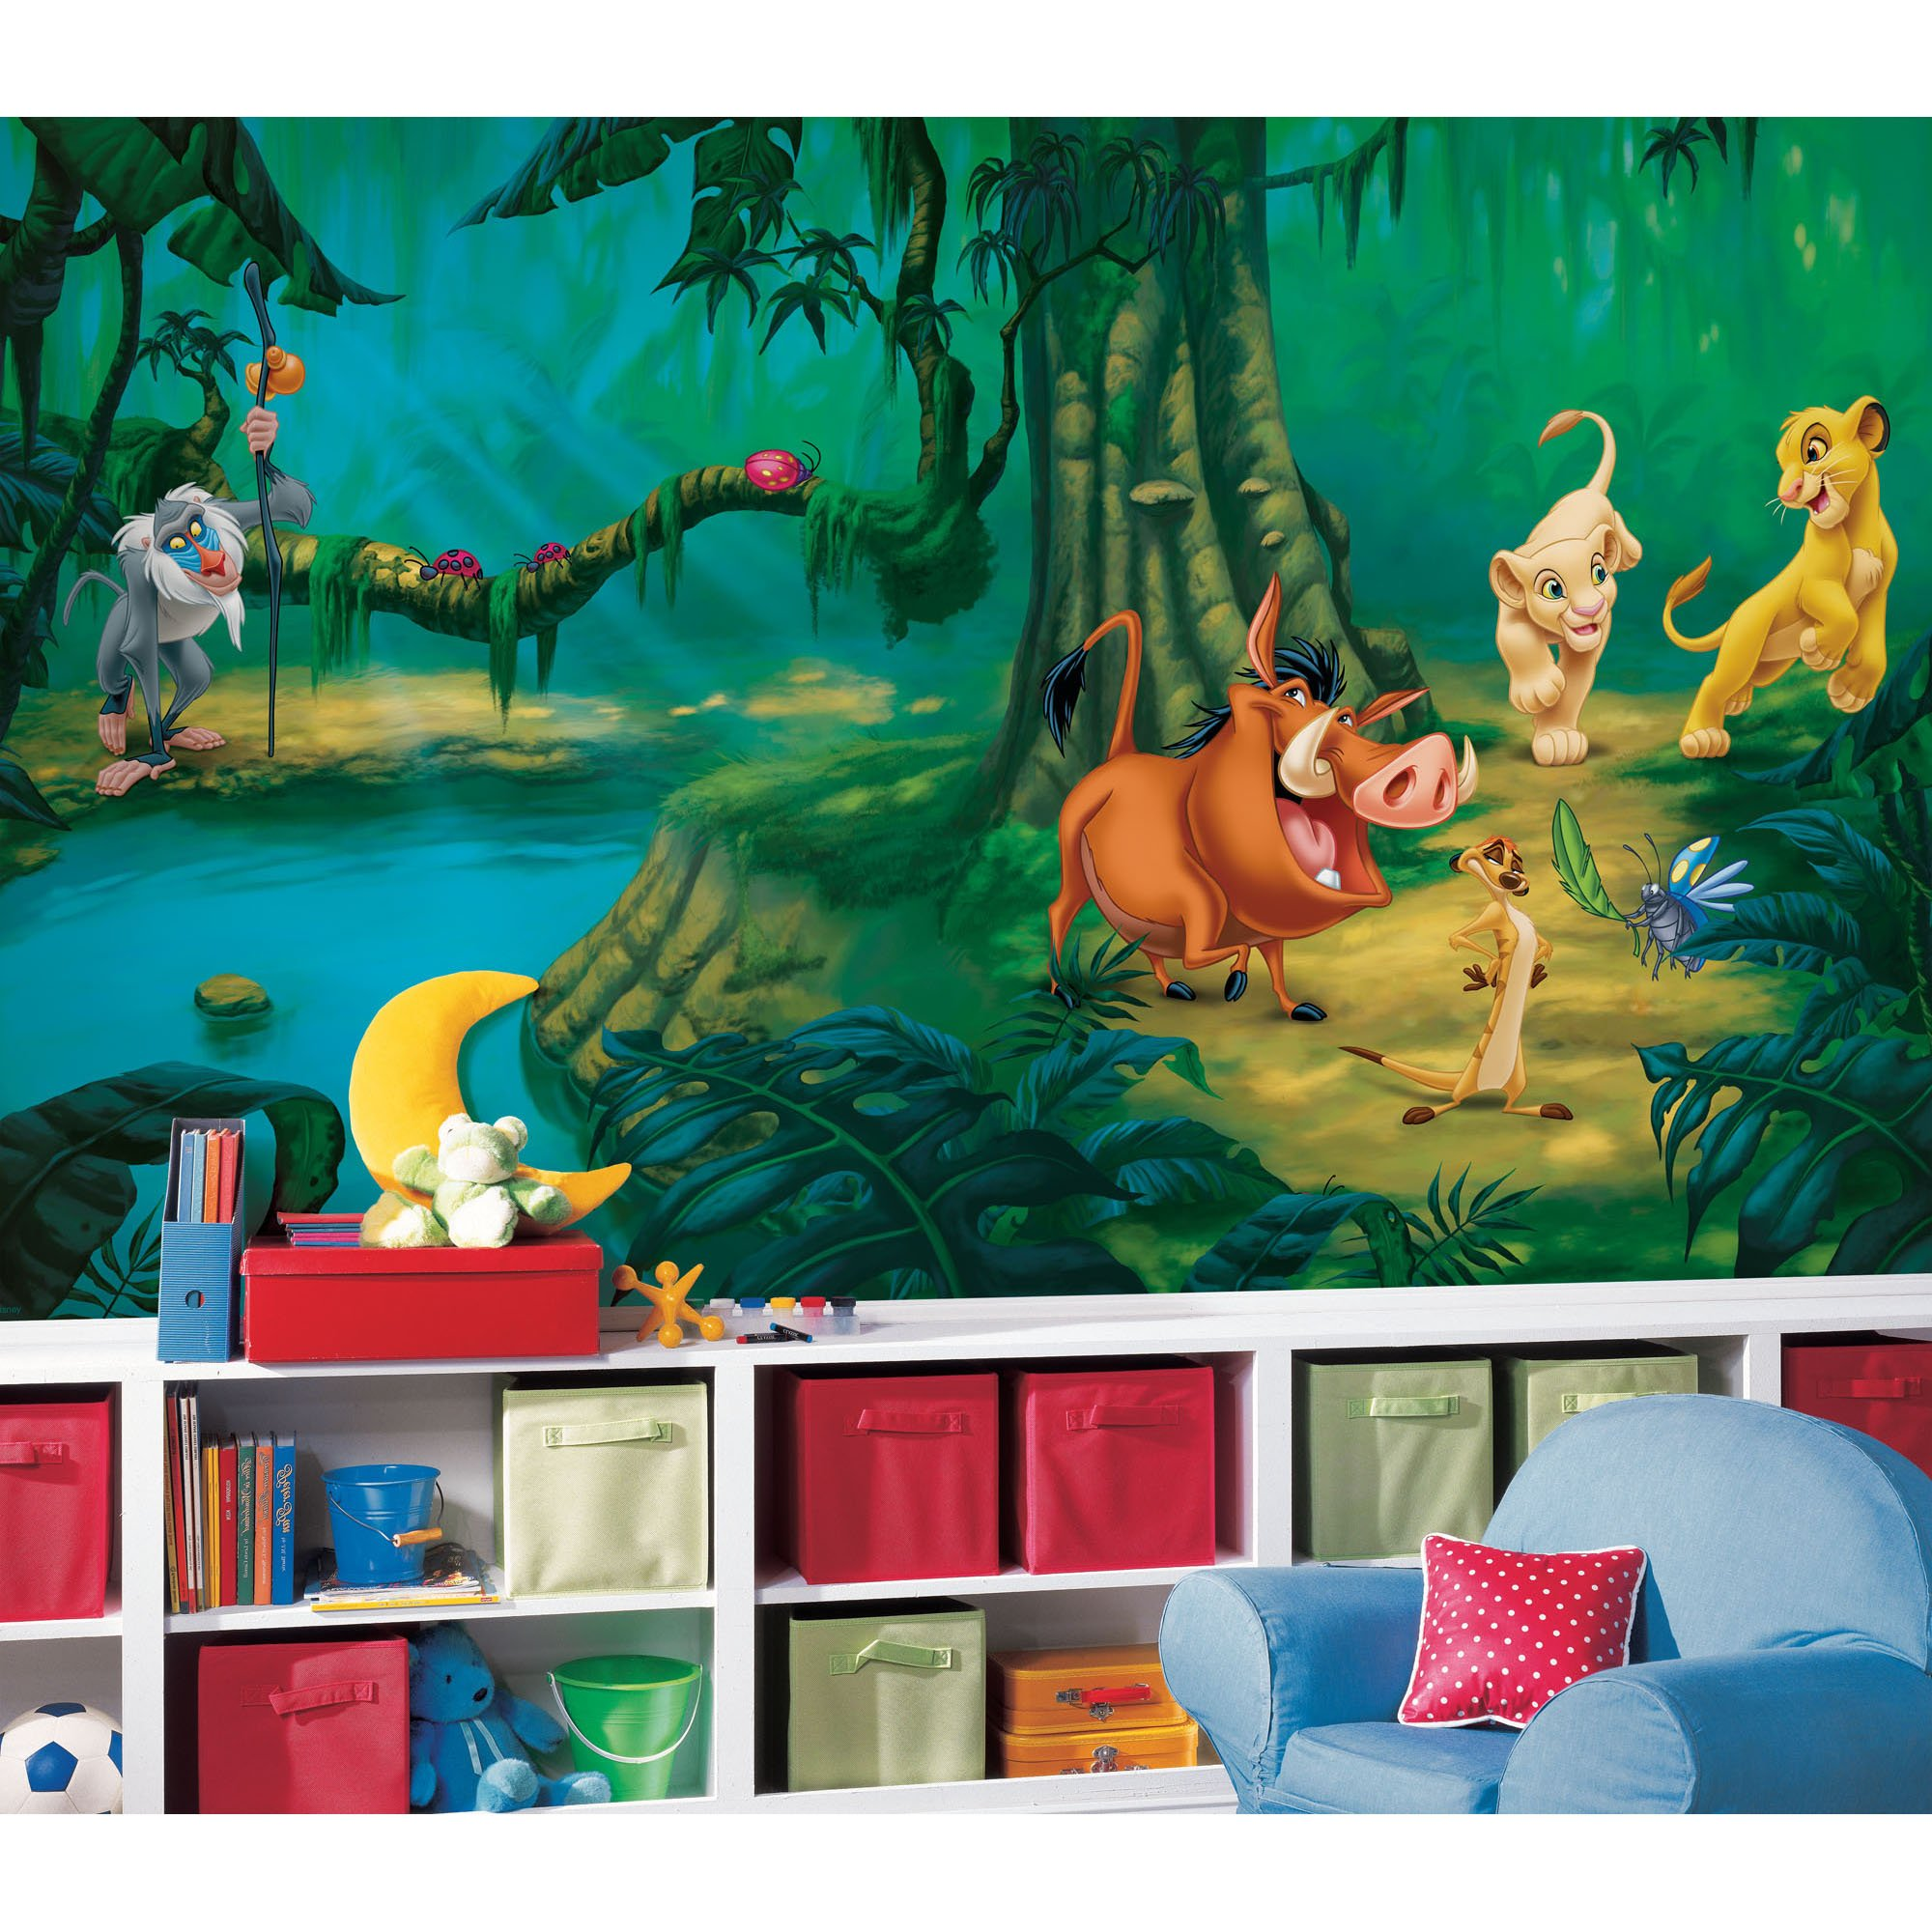 RoomMates Lion King Chair Rail Prepasted, Removable Wall Mural - 6' X 10.5' by RoomMates (Image #2)